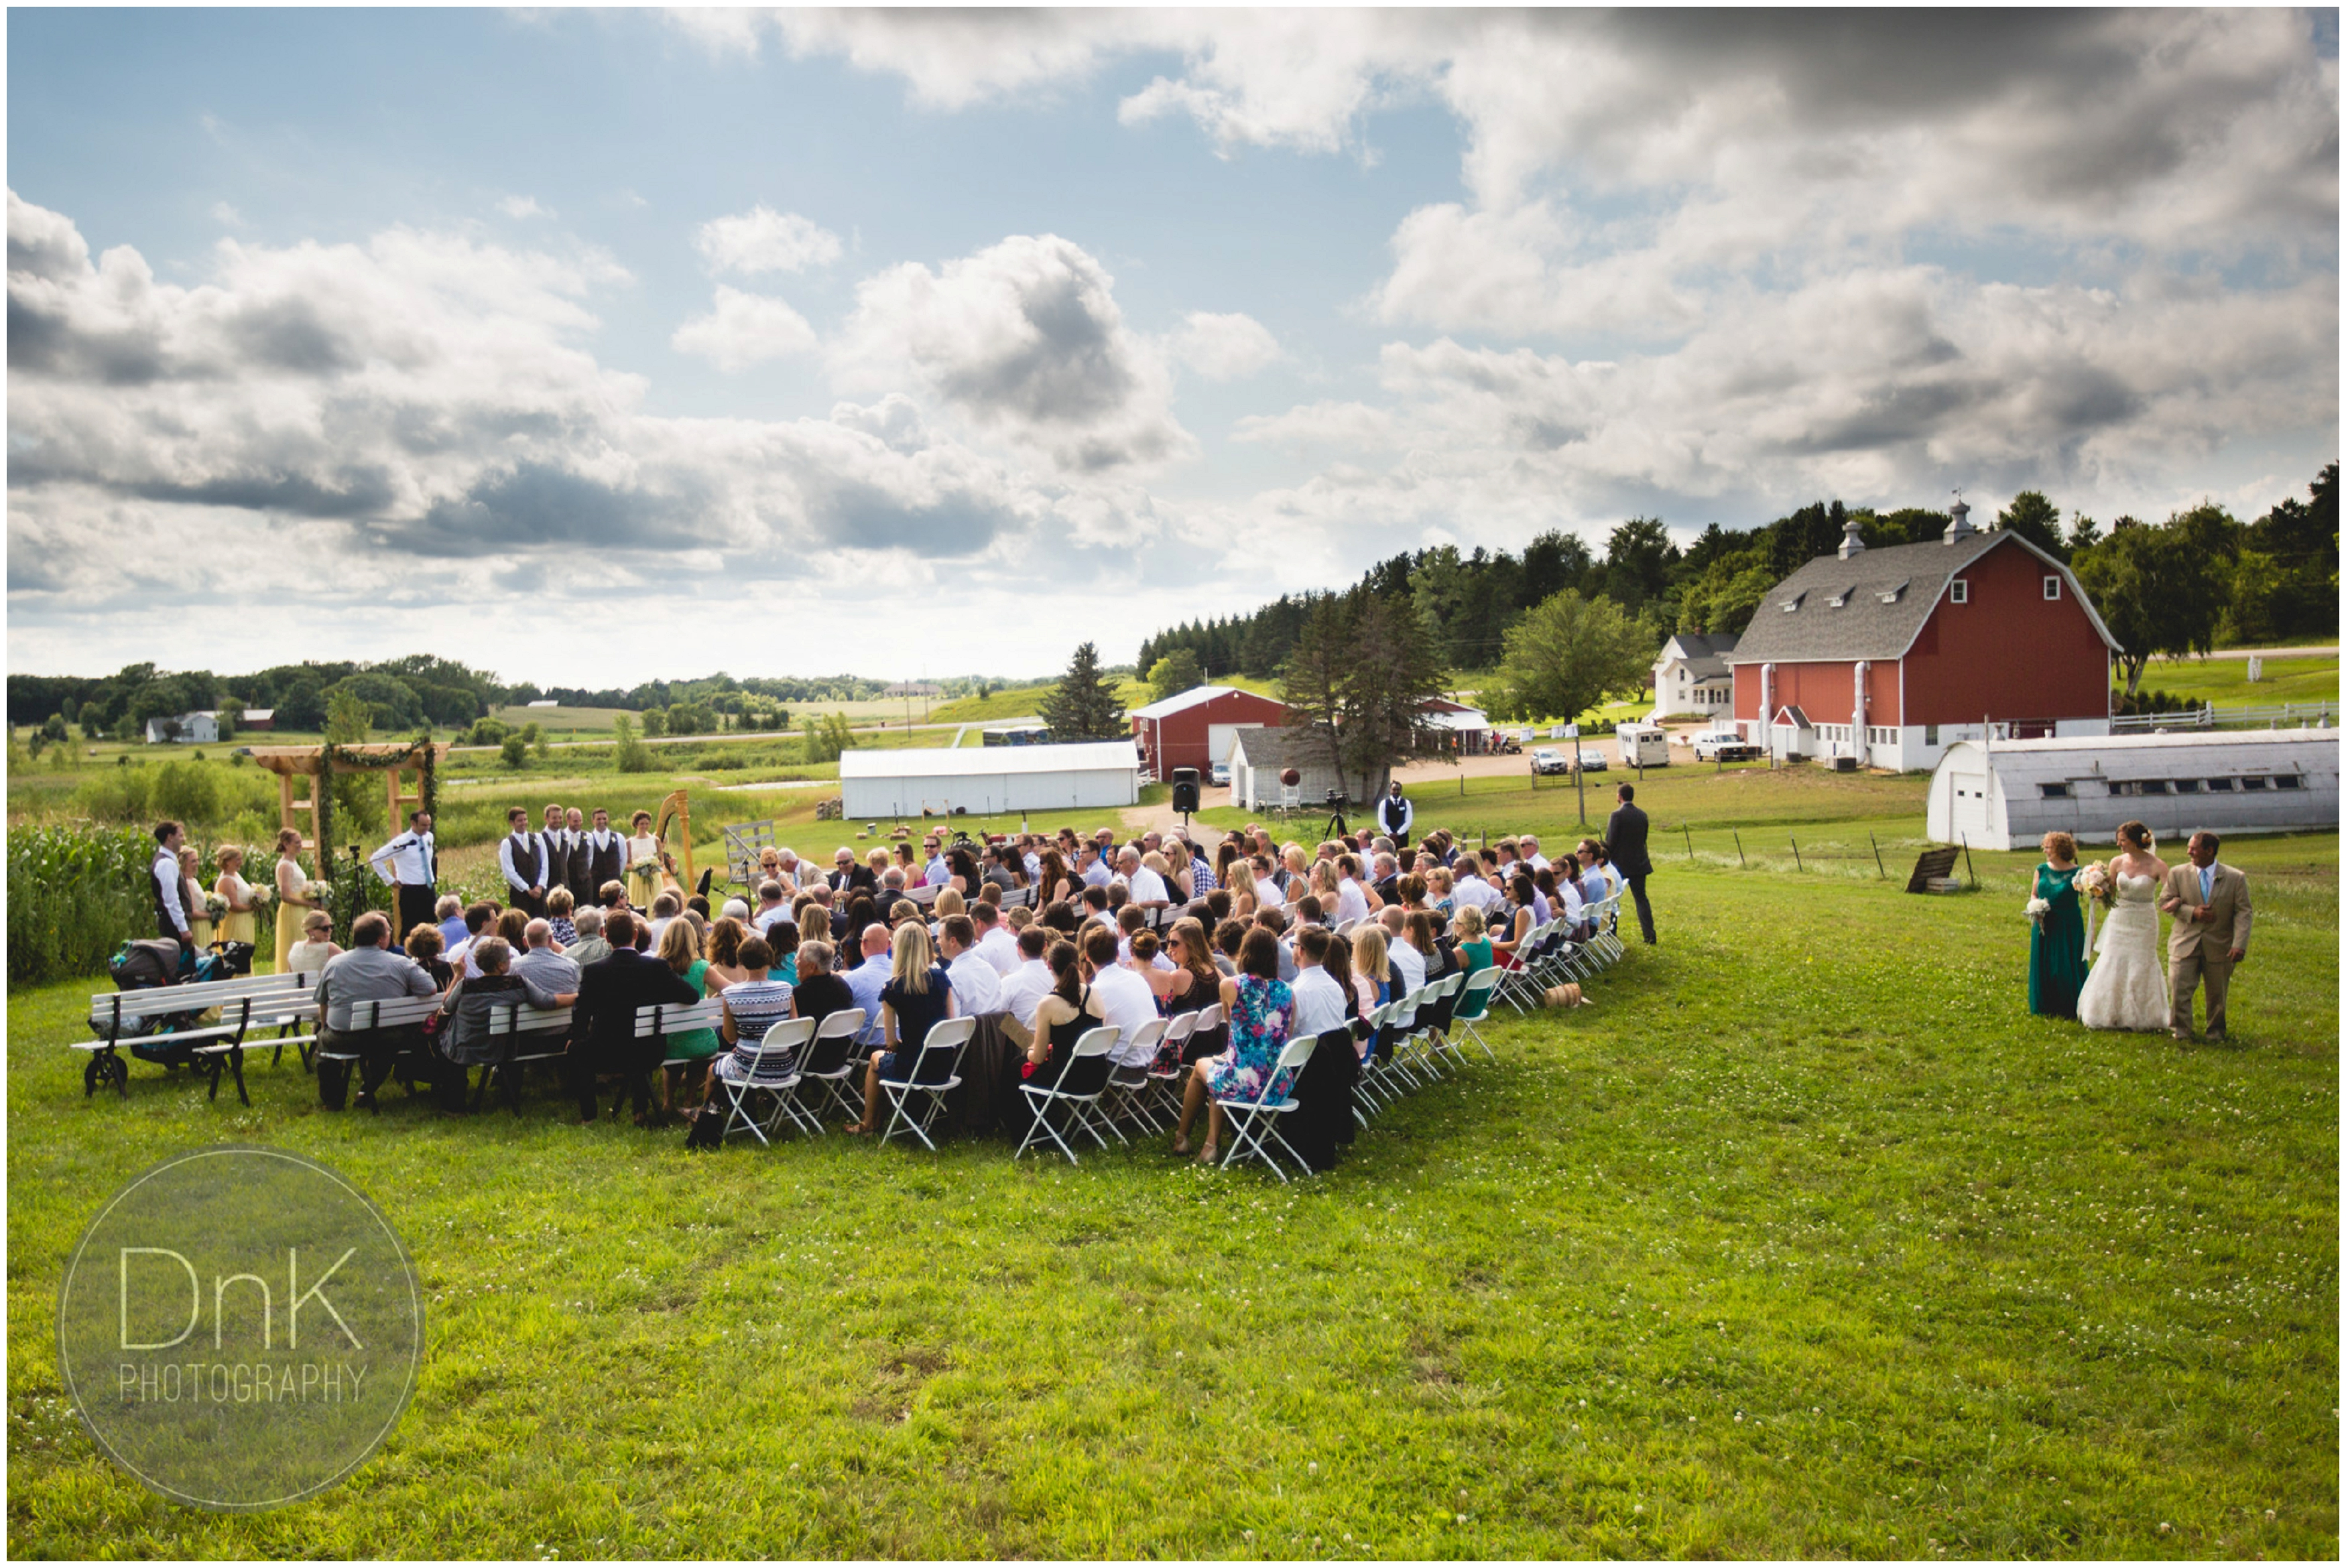 22 - Dellwood Barn Wedding Ceremony